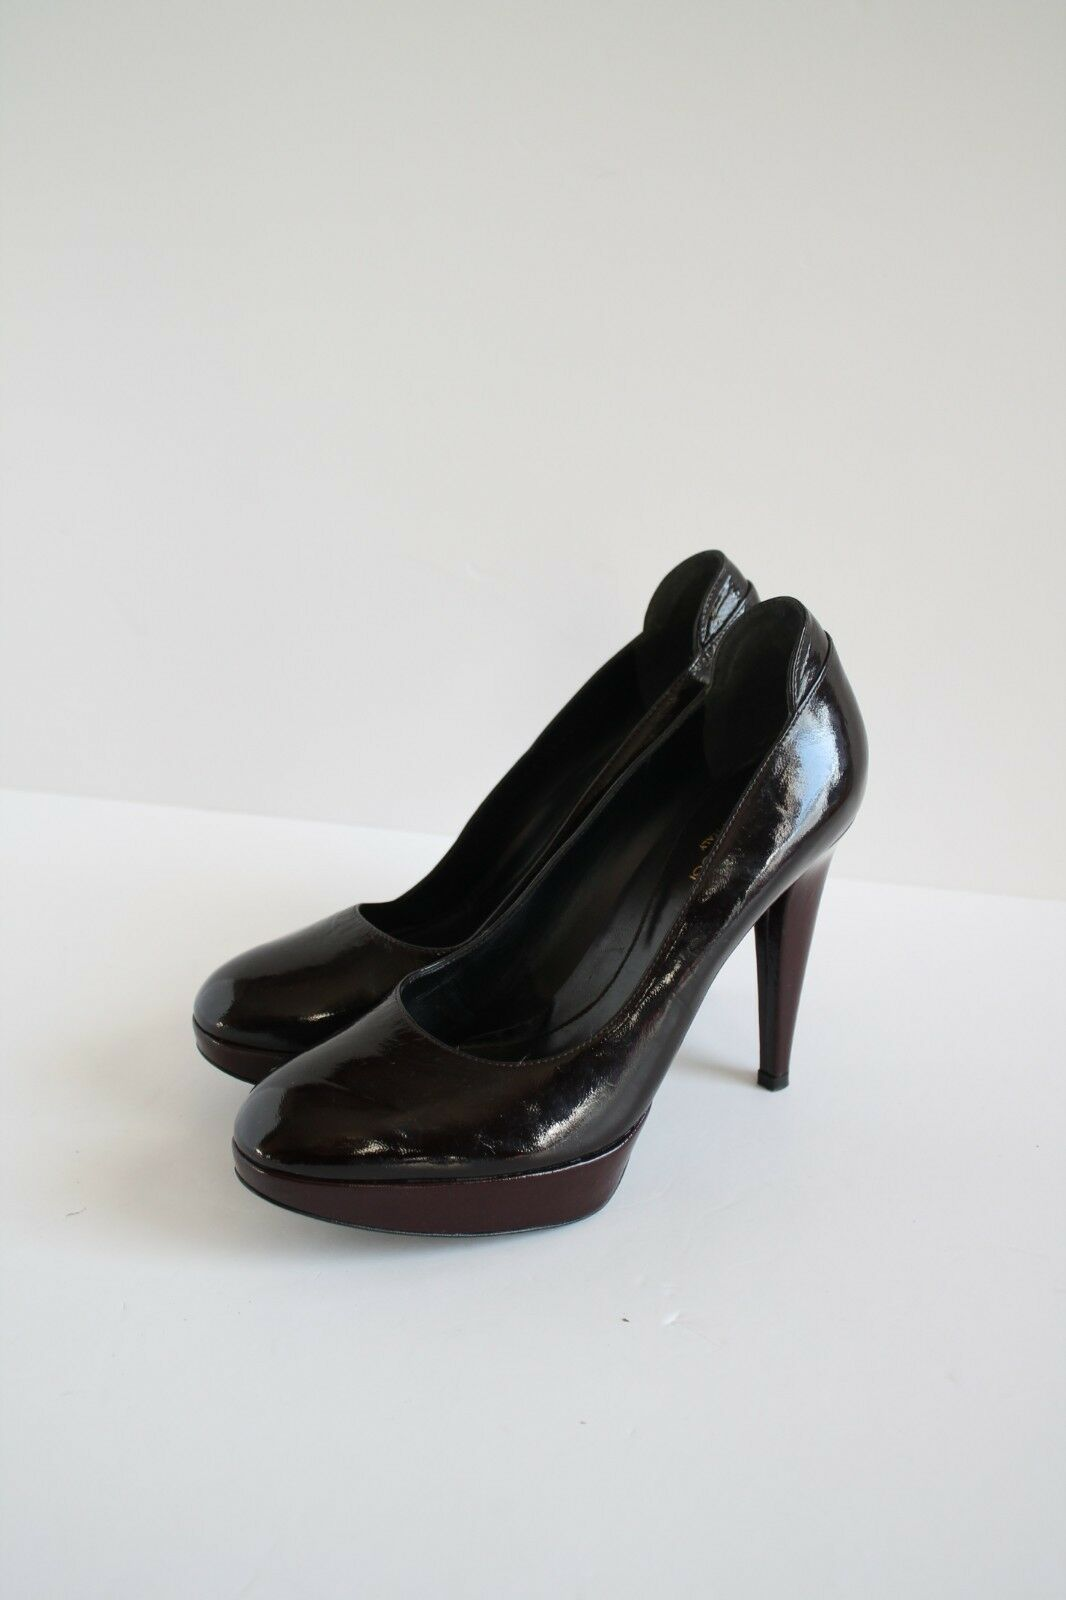 Sergio Rossi marron Cuir Verni Escarpins 38.5 UK 5.5